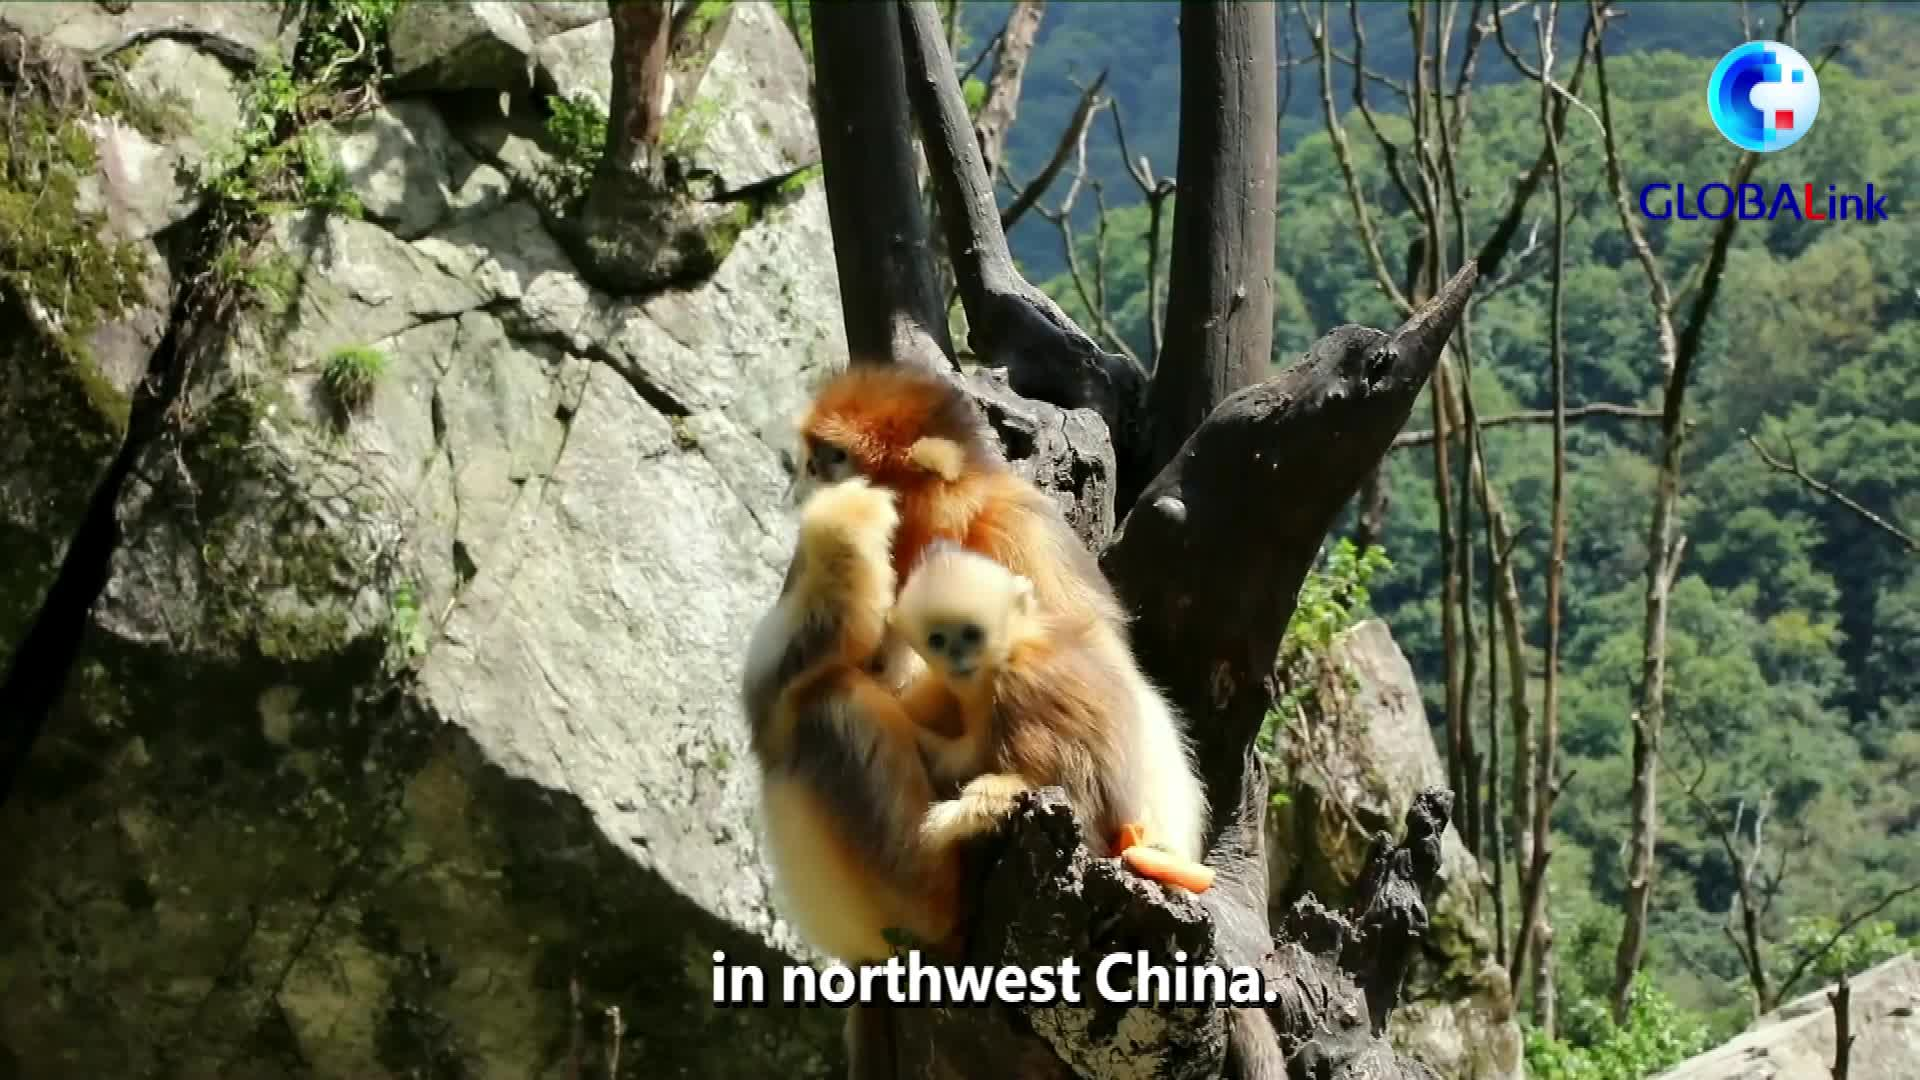 GlOBALink | Golden snub-nosed monkeys spotted in NW China